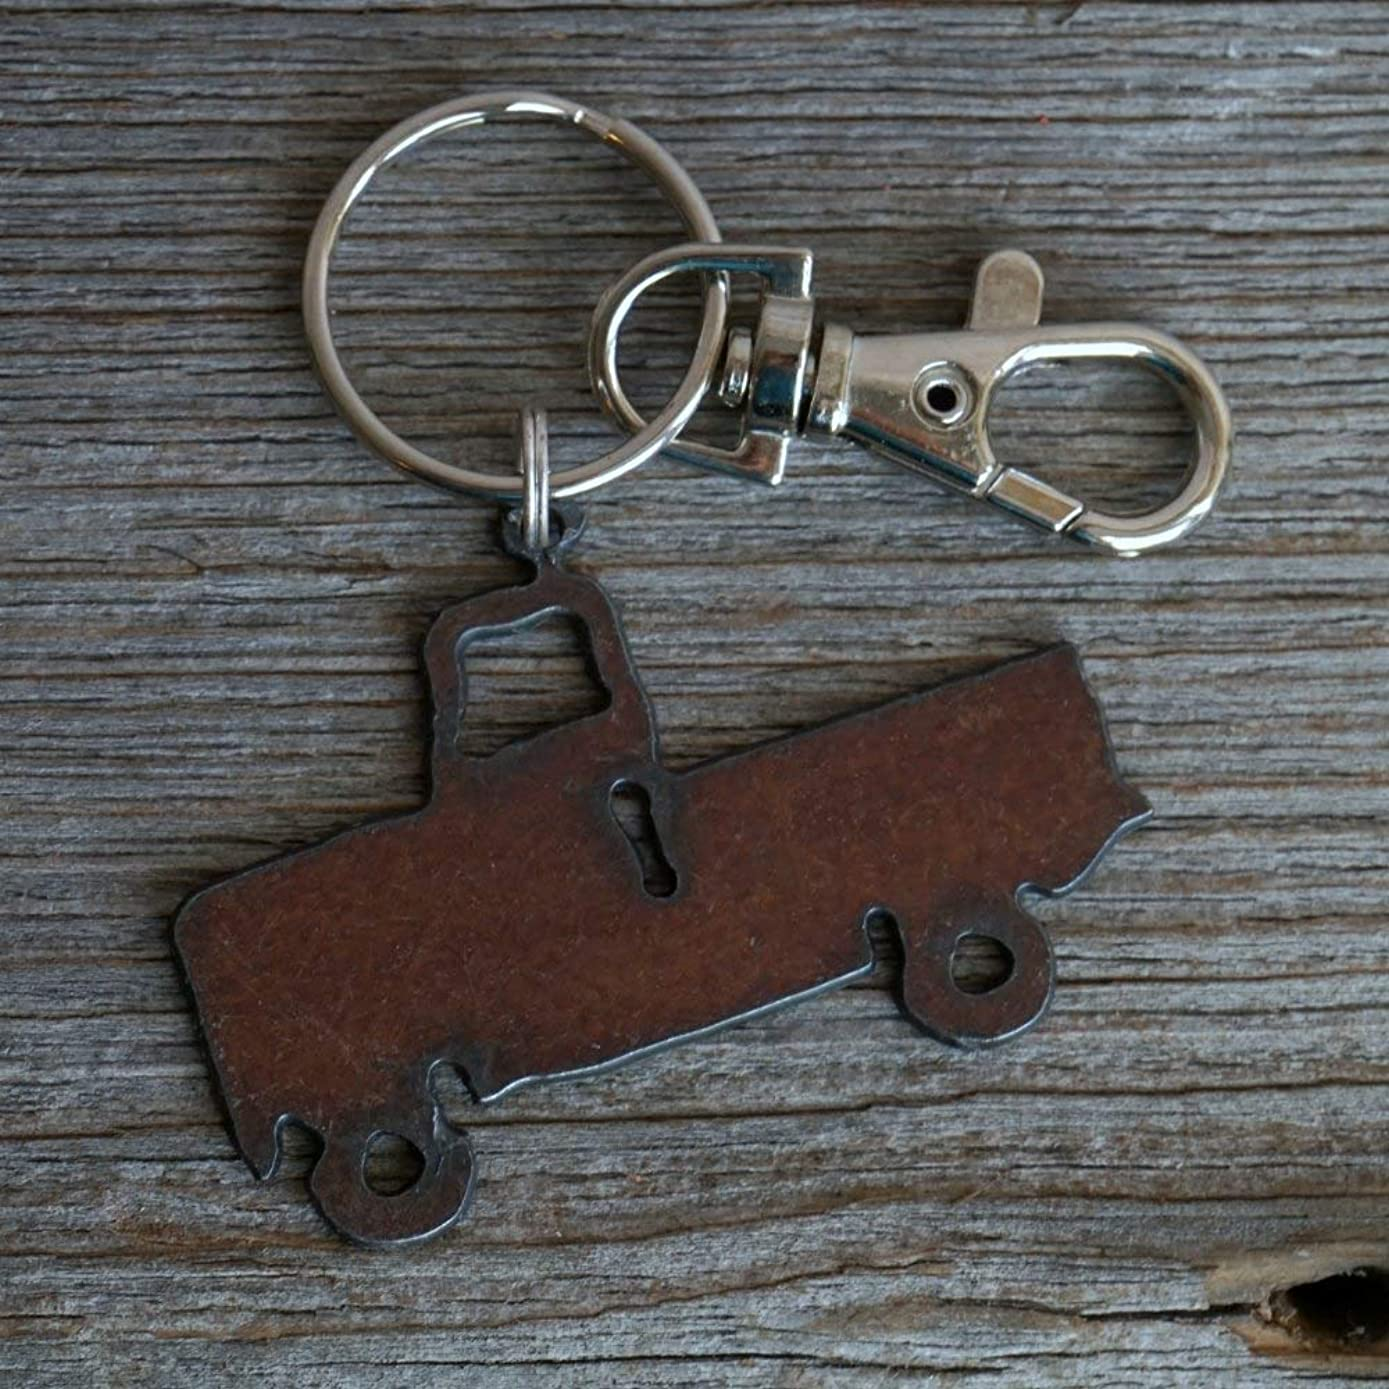 Pickup Truck Keychain ~ Rustic Keyring, Farm Key Chain Gift for Him